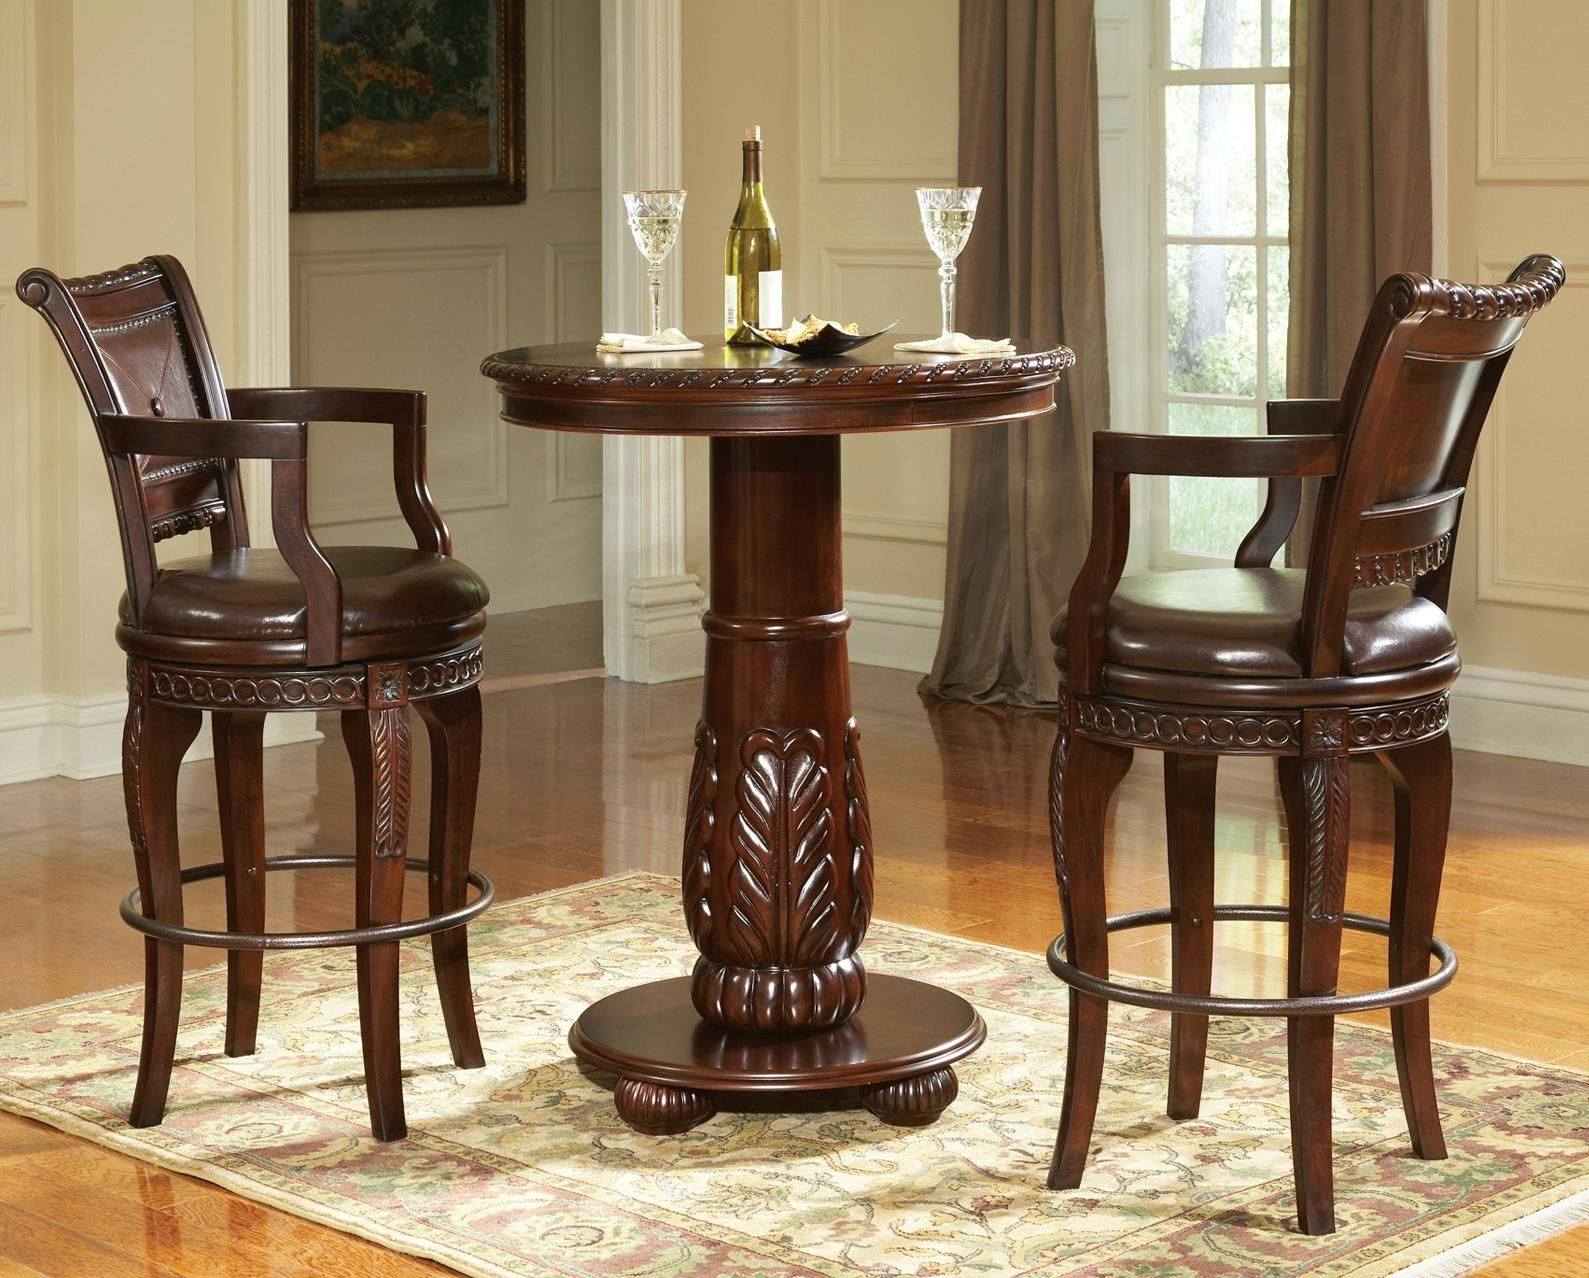 Prime Antoinette 3-Piece Pedestal Pub Table u0026 Bar Stool Set & Prime Antoinette 3-Piece Pedestal Pub Table u0026 Bar Stool Set | Prime ...